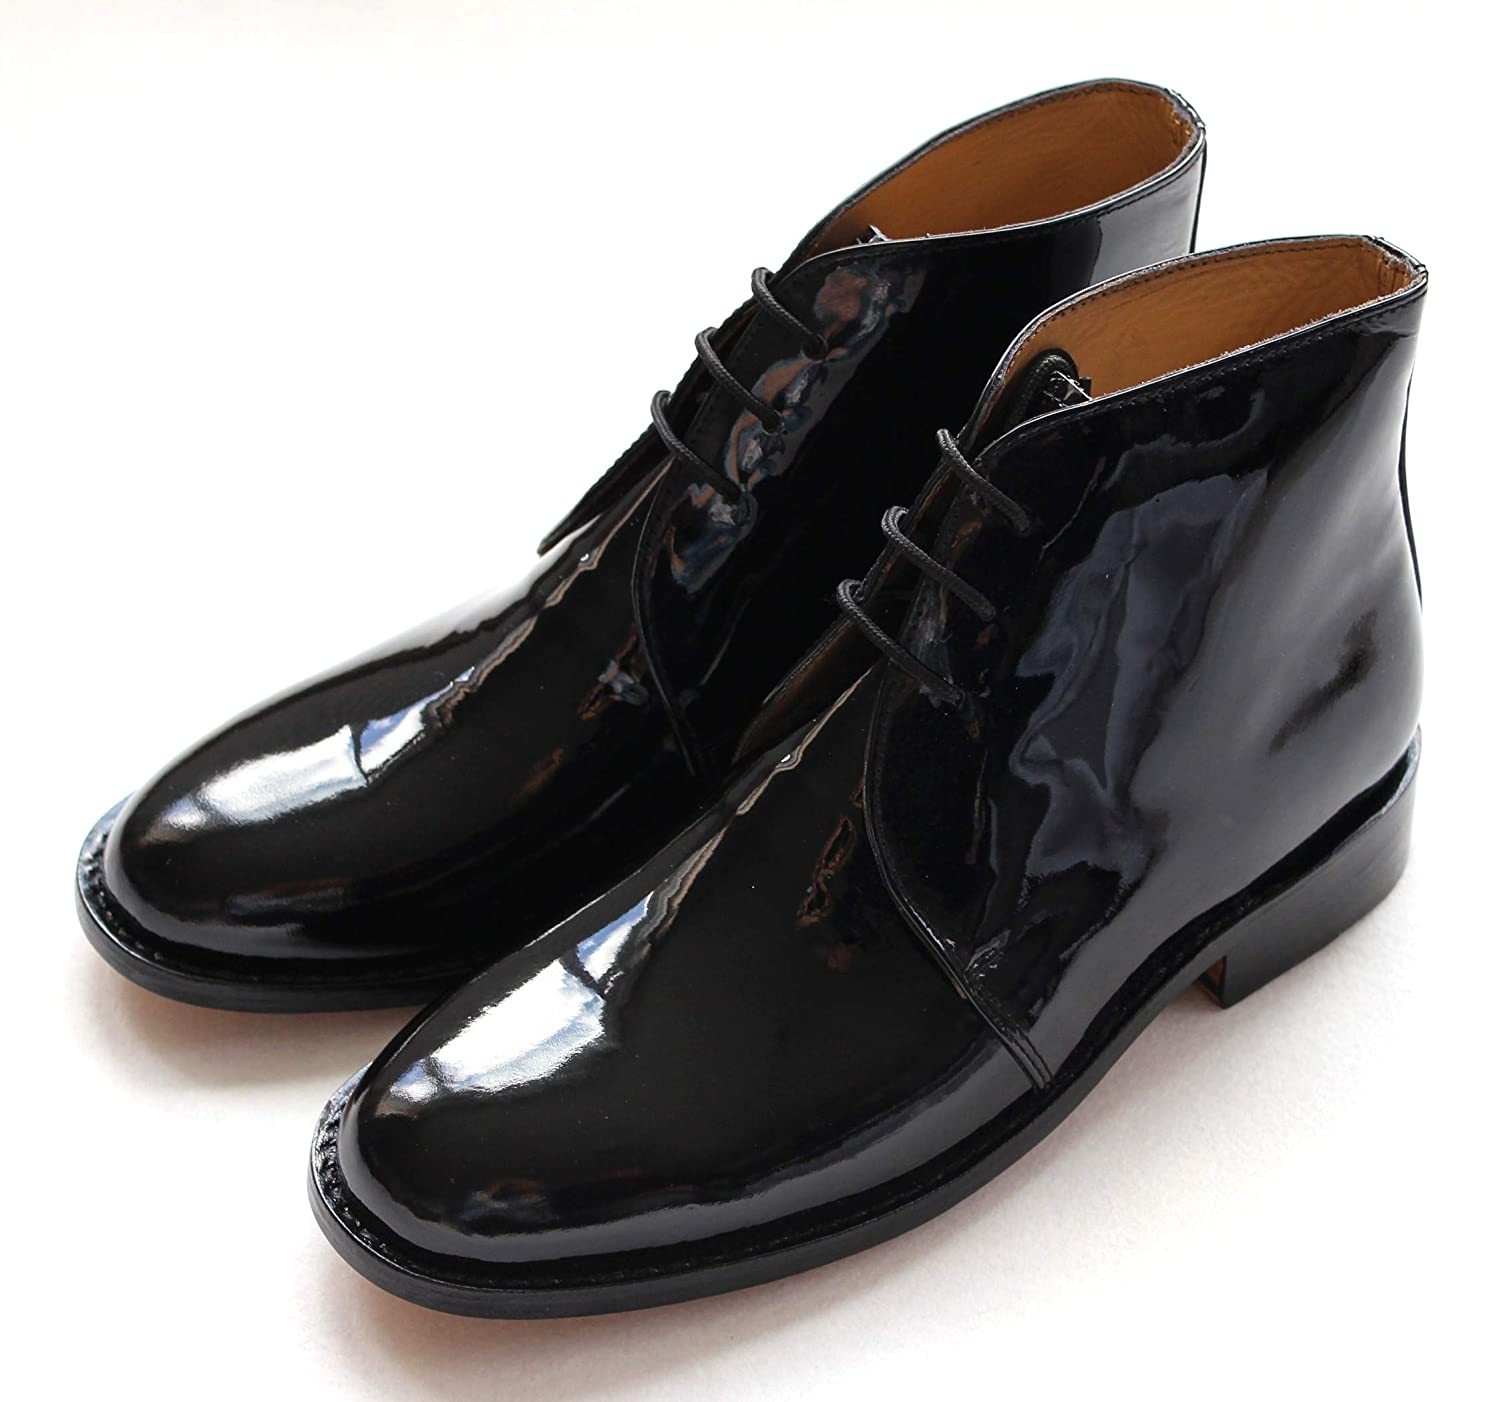 AE Struthers - Thistle Executive Patent Leather Custom Grade Good Year Welted George Boot Mess Cadet RRP £ 60